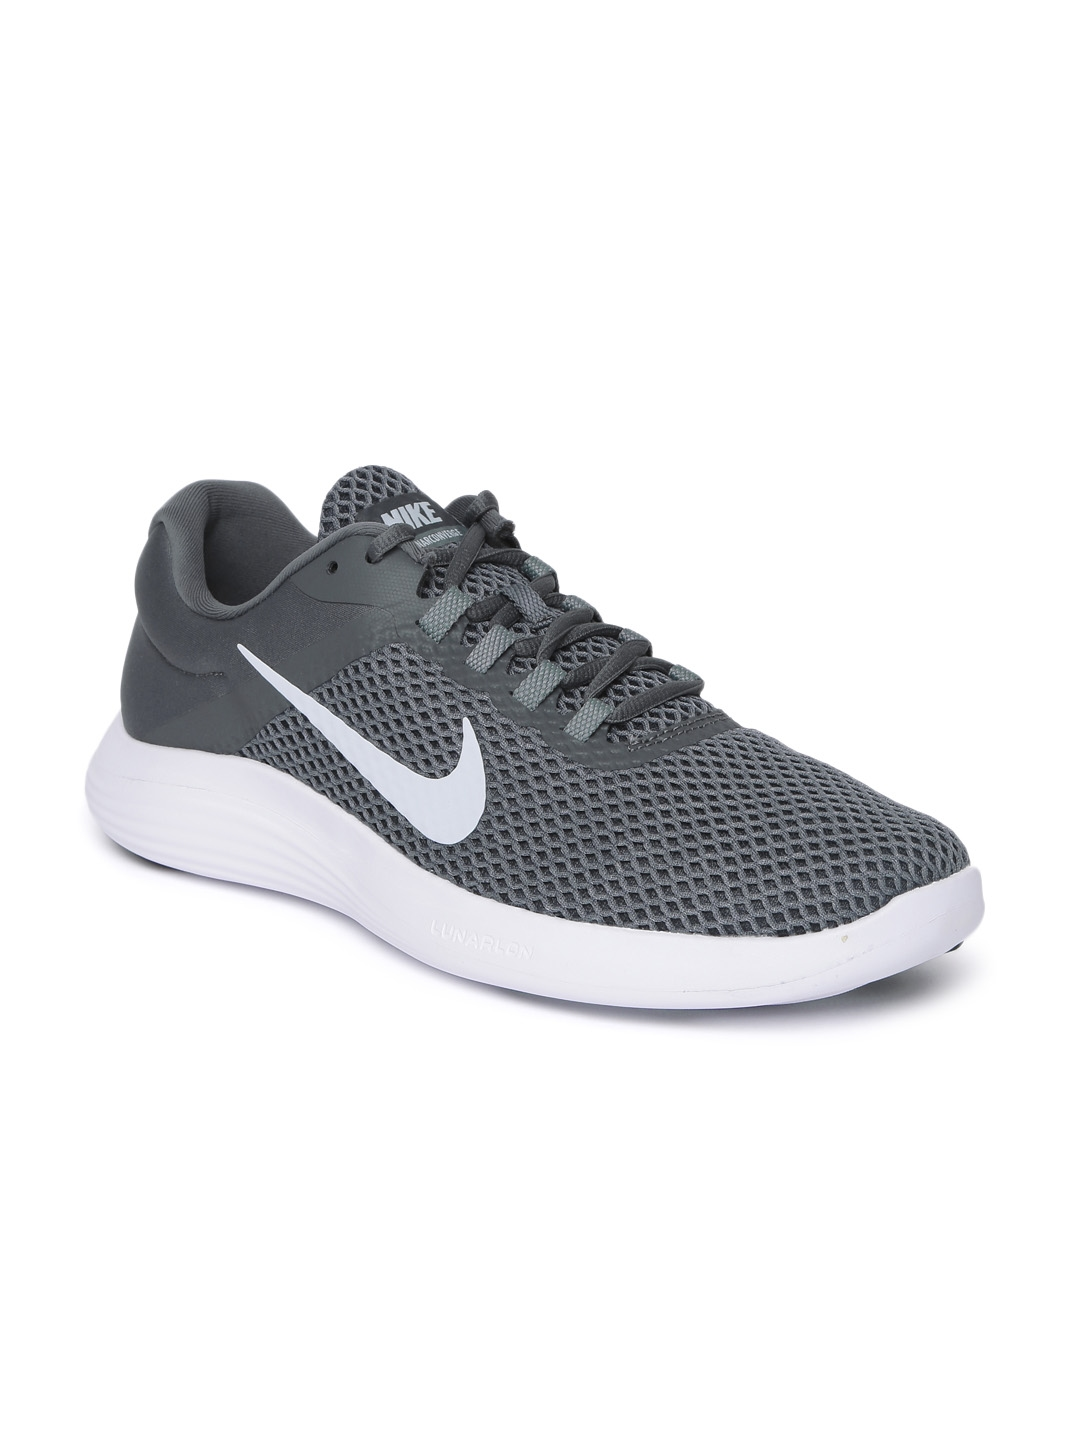 Buy Nike Men Grey LUNARCONVERGE 2 Running Shoes - Sports Shoes for ... 11aefbc46